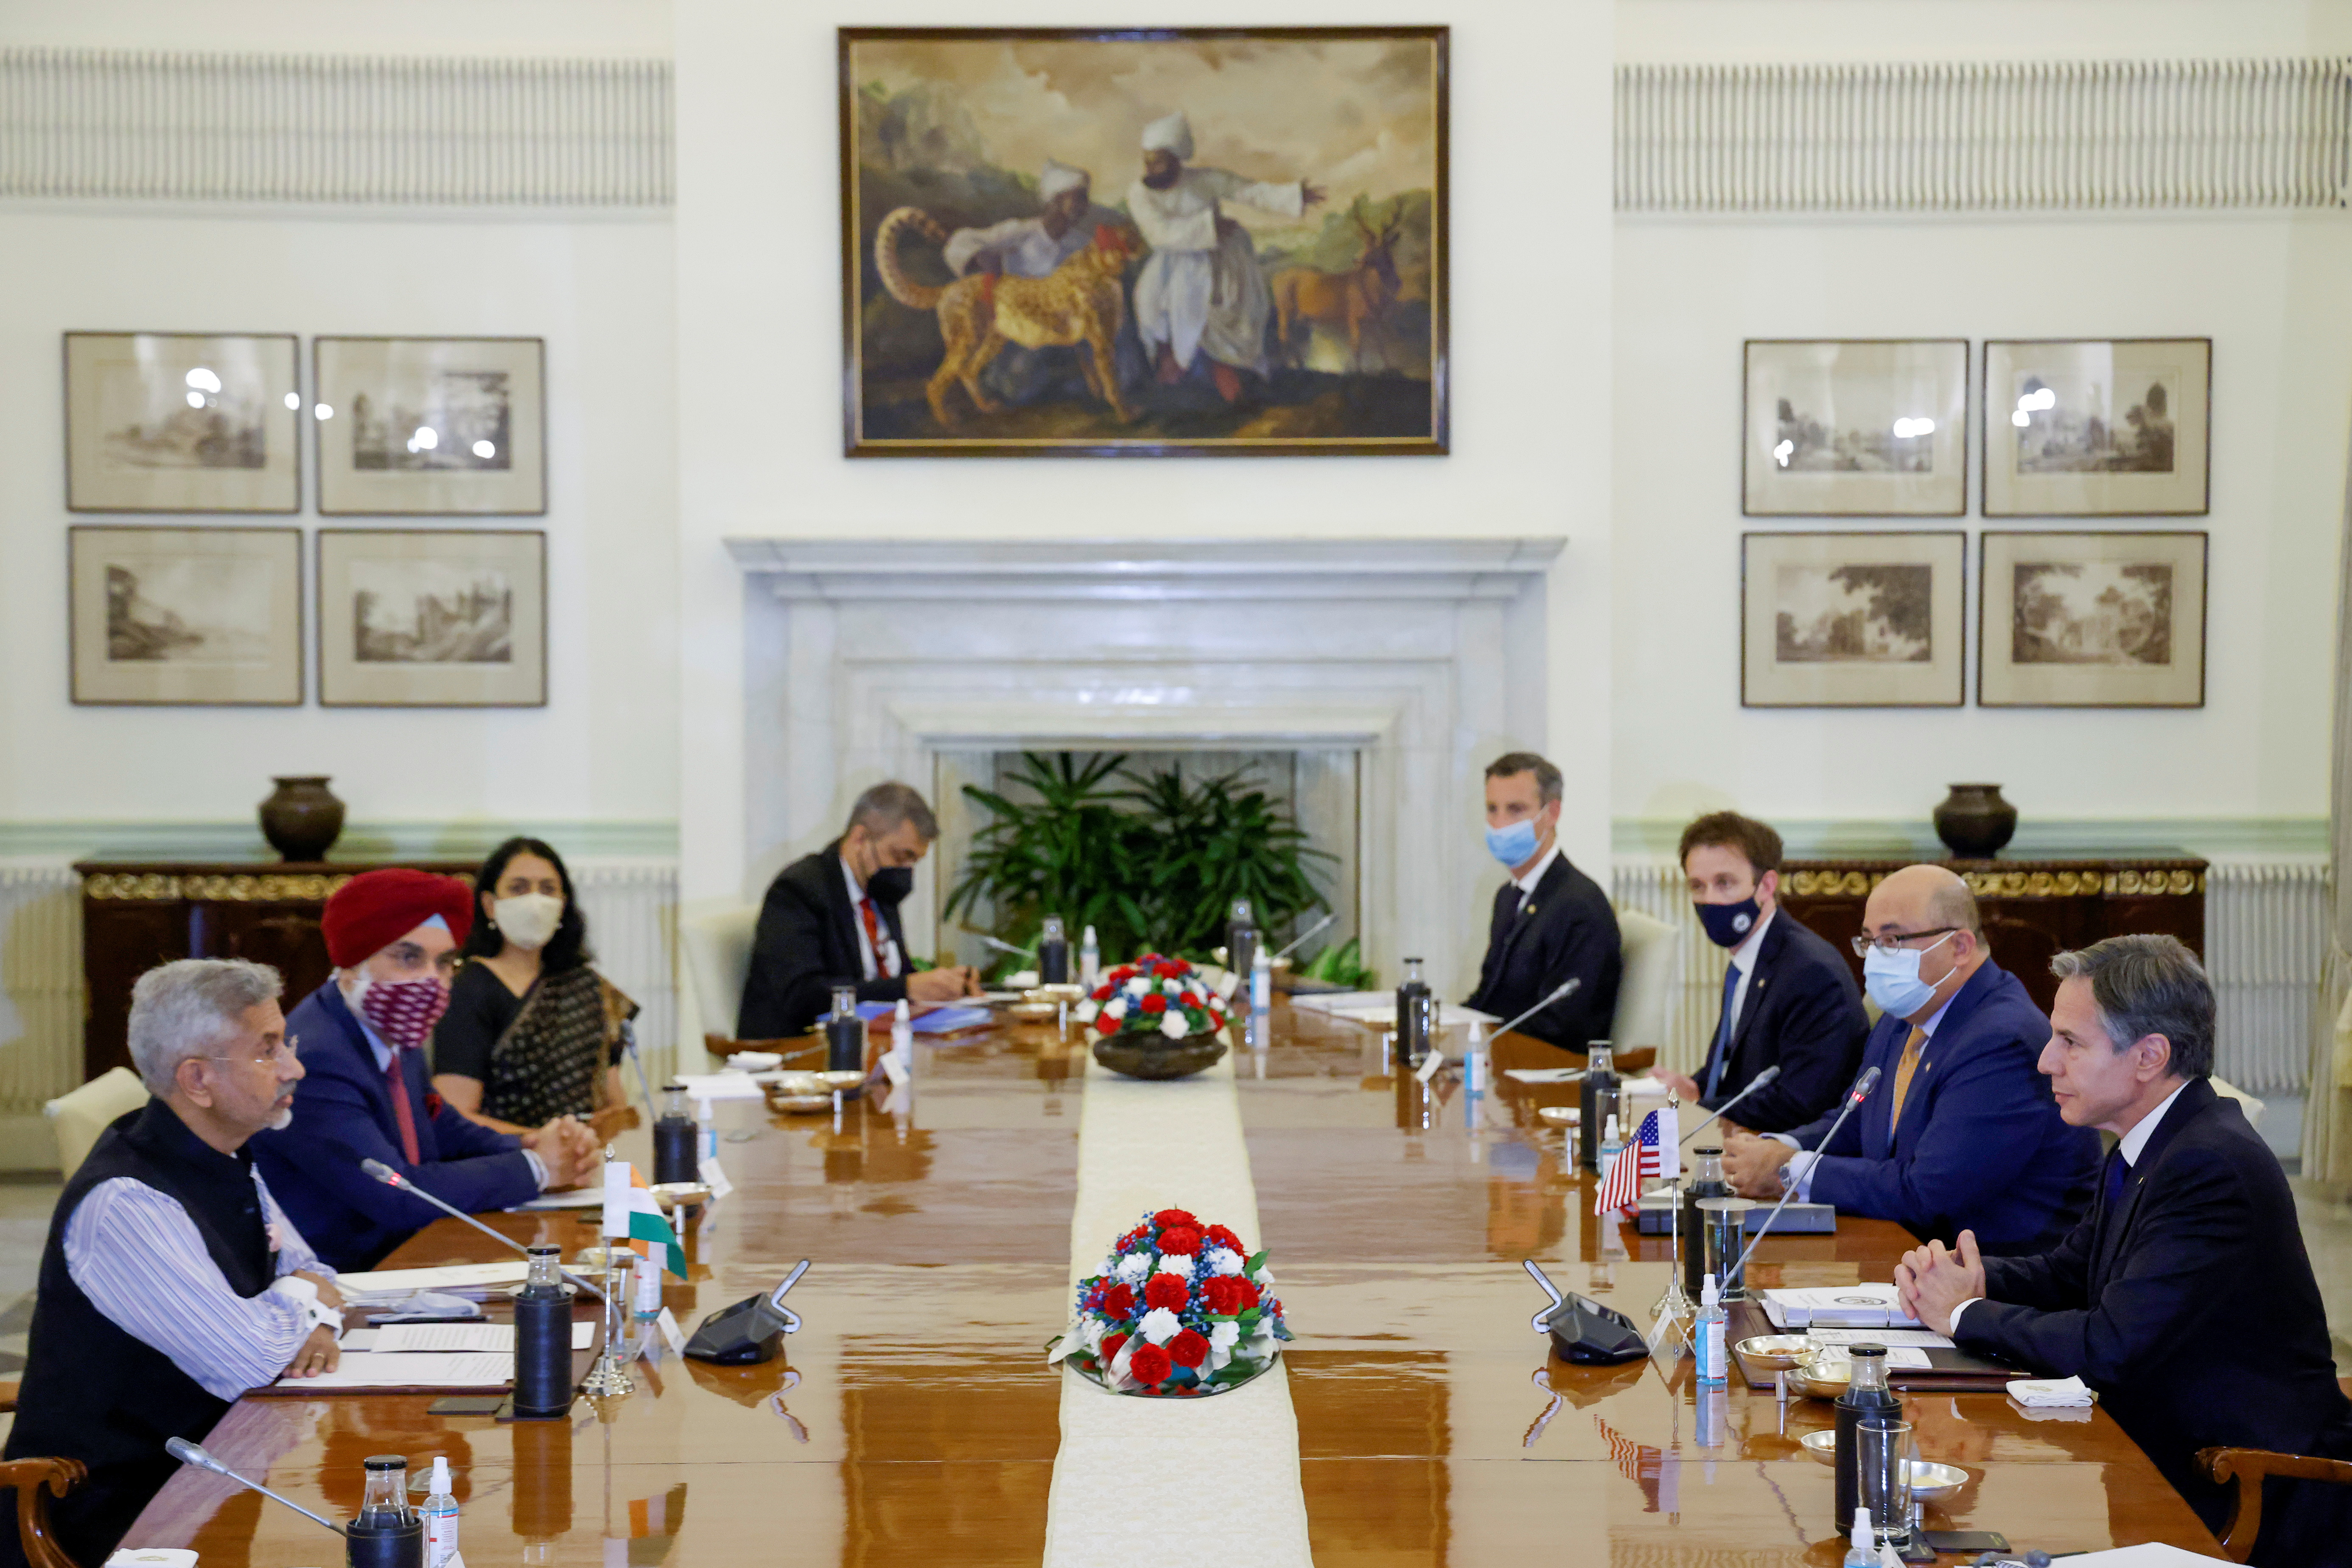 India'sMinisterofExternalAffairs Subrahmanyam Jaishankar and U.S. Secretary of State Antony Blinken deliver opening remarks as they sit down to meet at Hyderabad House in New Delhi, India July 28, 2021. REUTERS/Jonathan Ernst